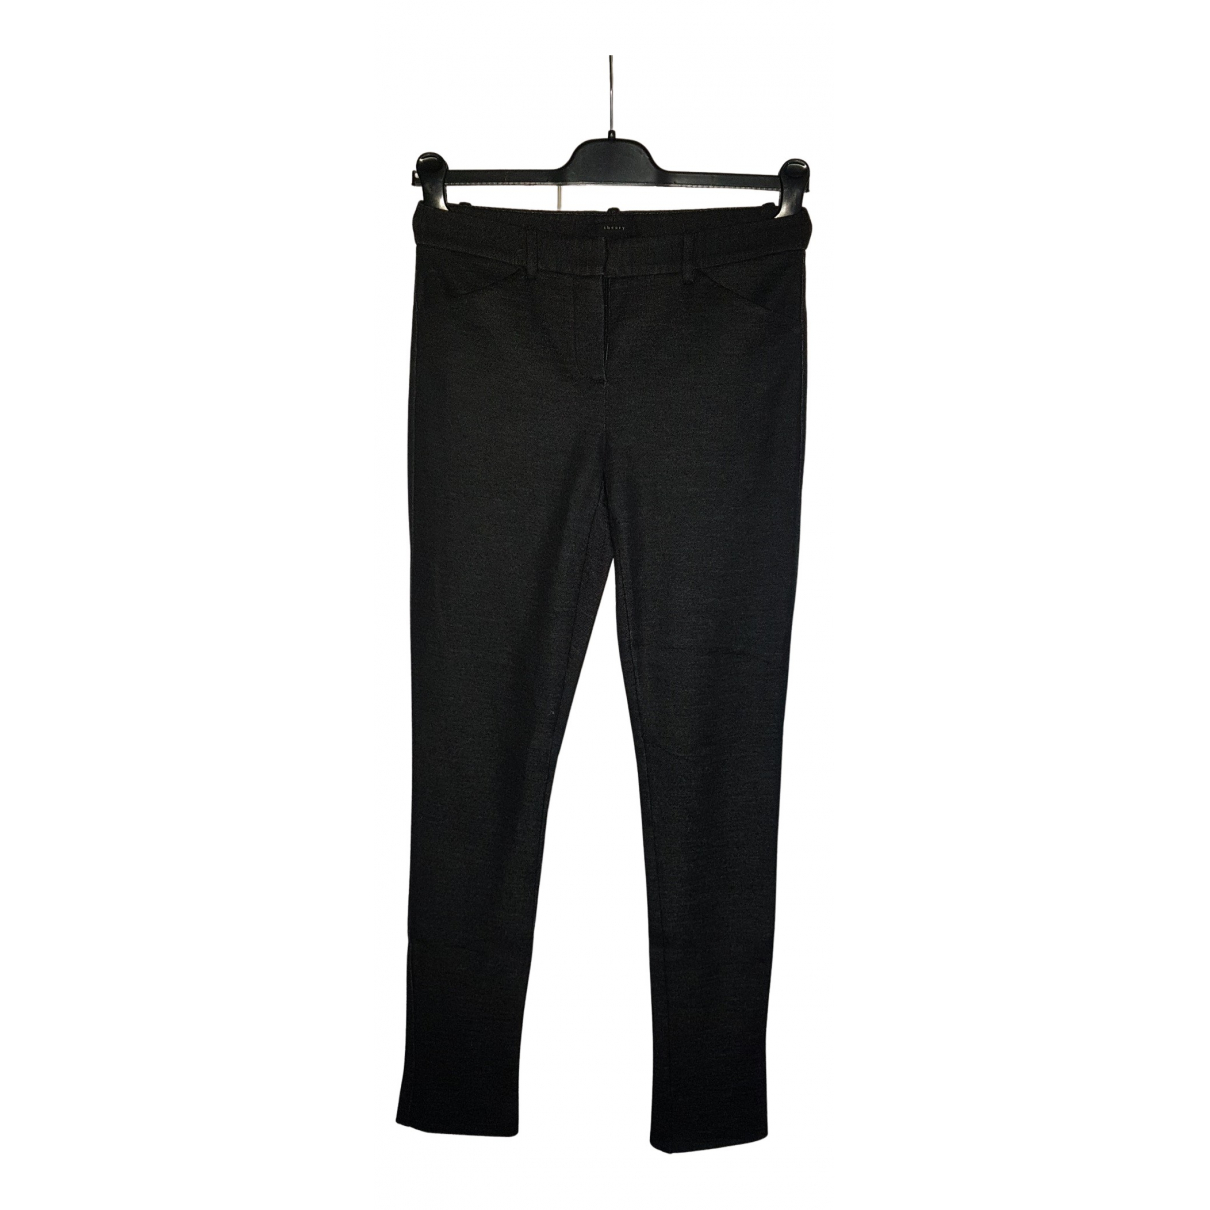 Theory N Anthracite Wool Trousers for Women 2 US